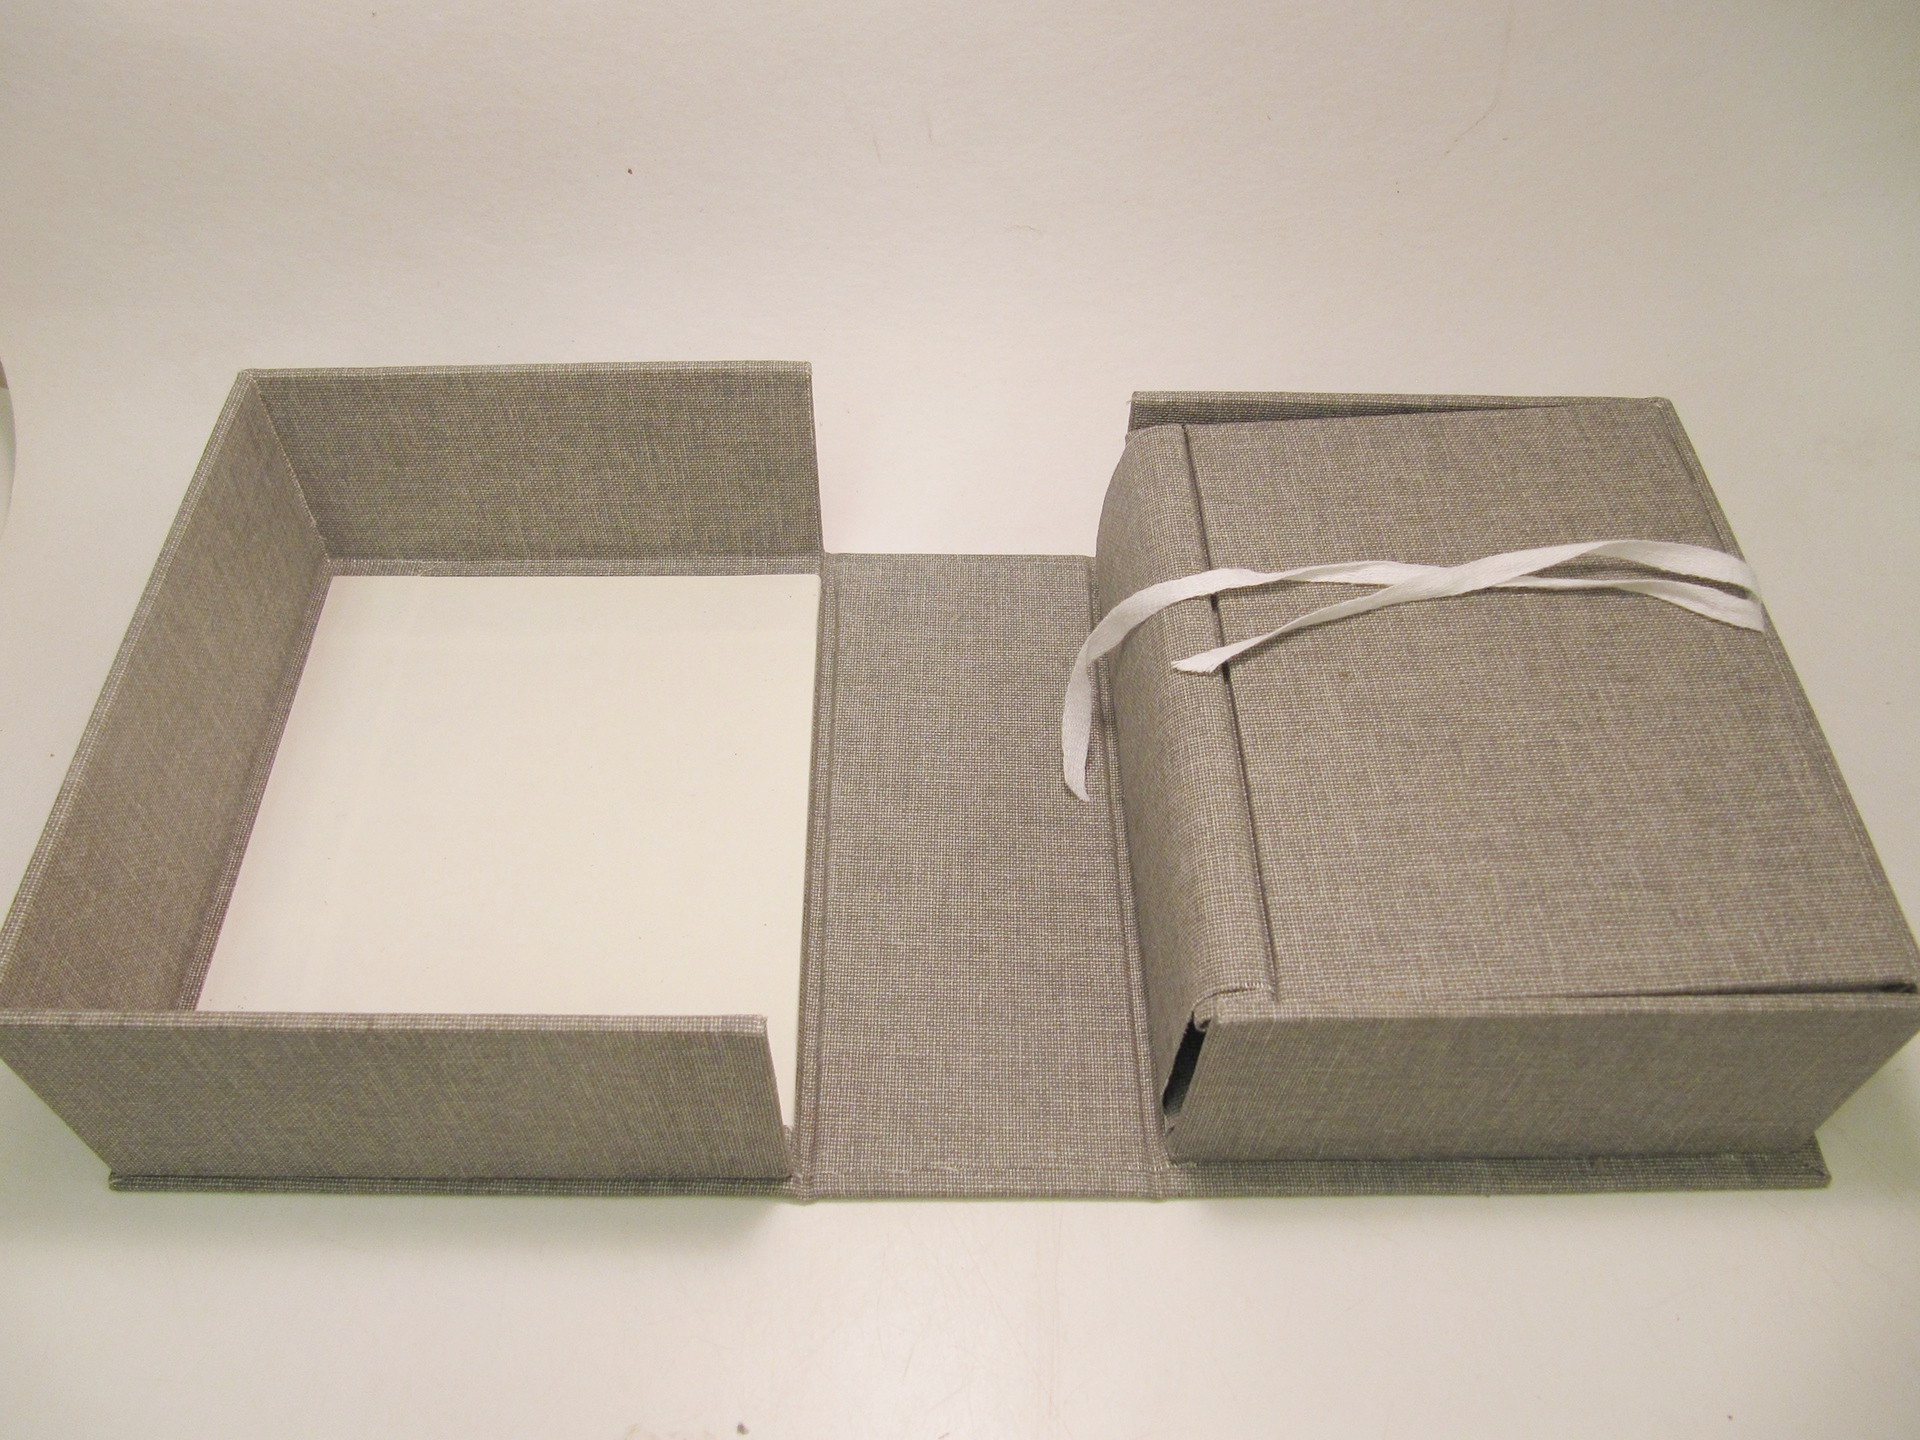 Clamshell box with integrated cradle.